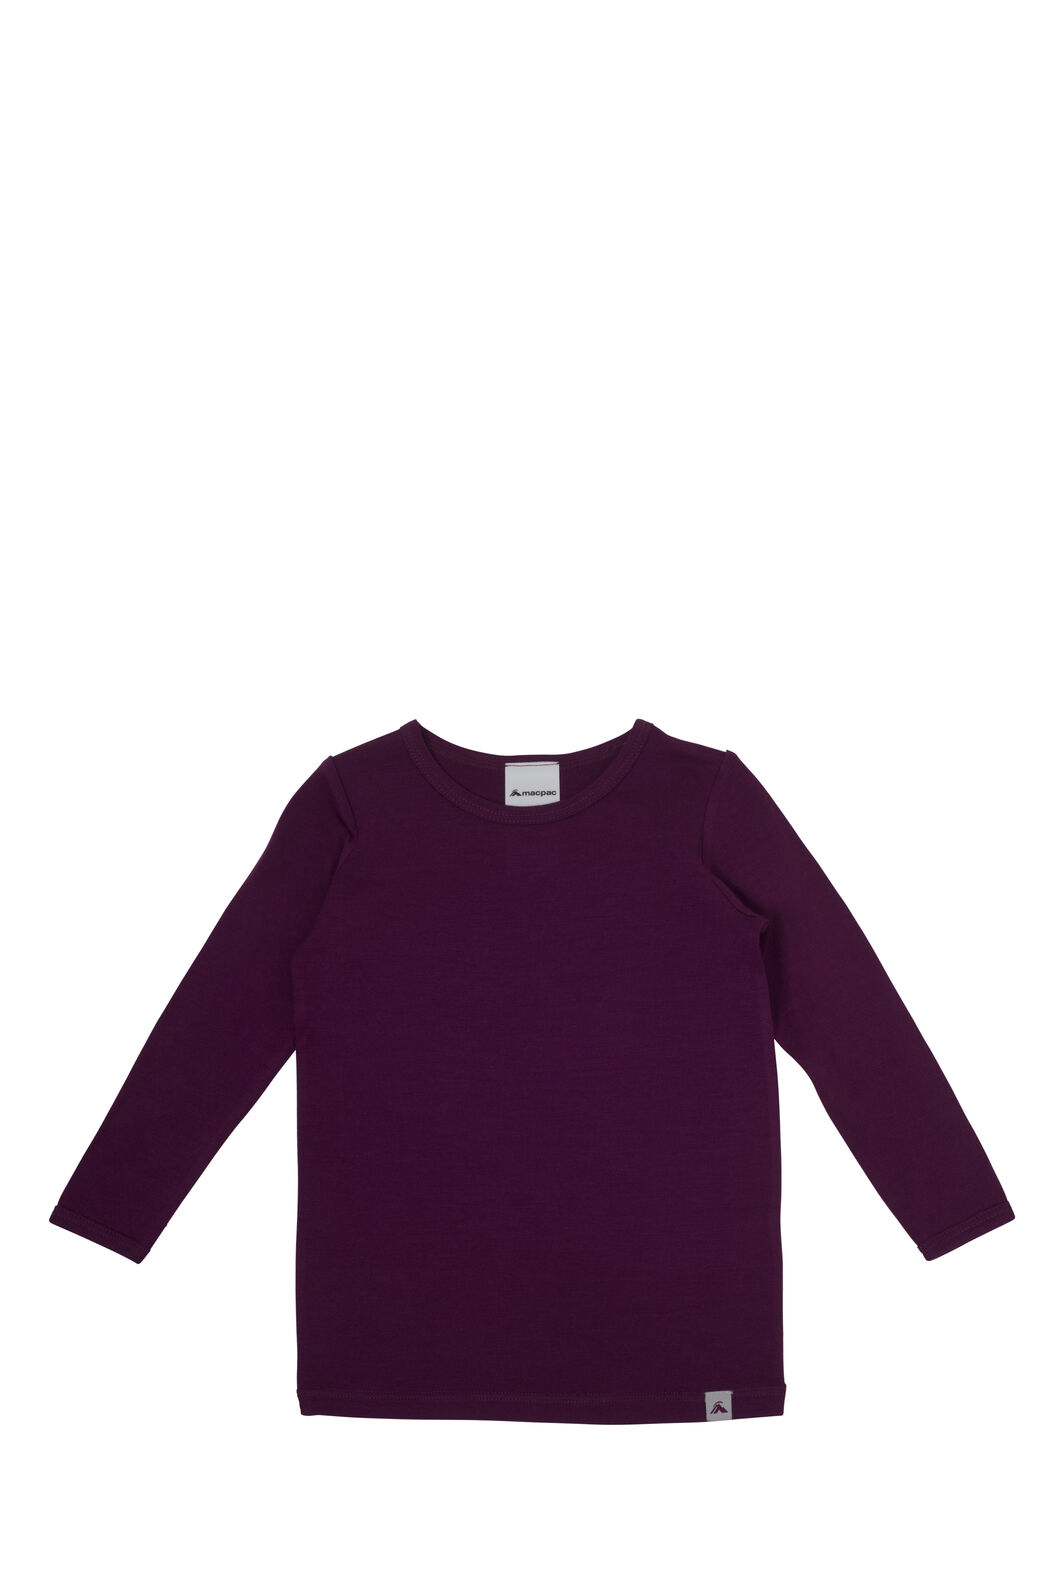 Macpac 150 Merino Long Sleeve Top - Baby, Magenta, hi-res